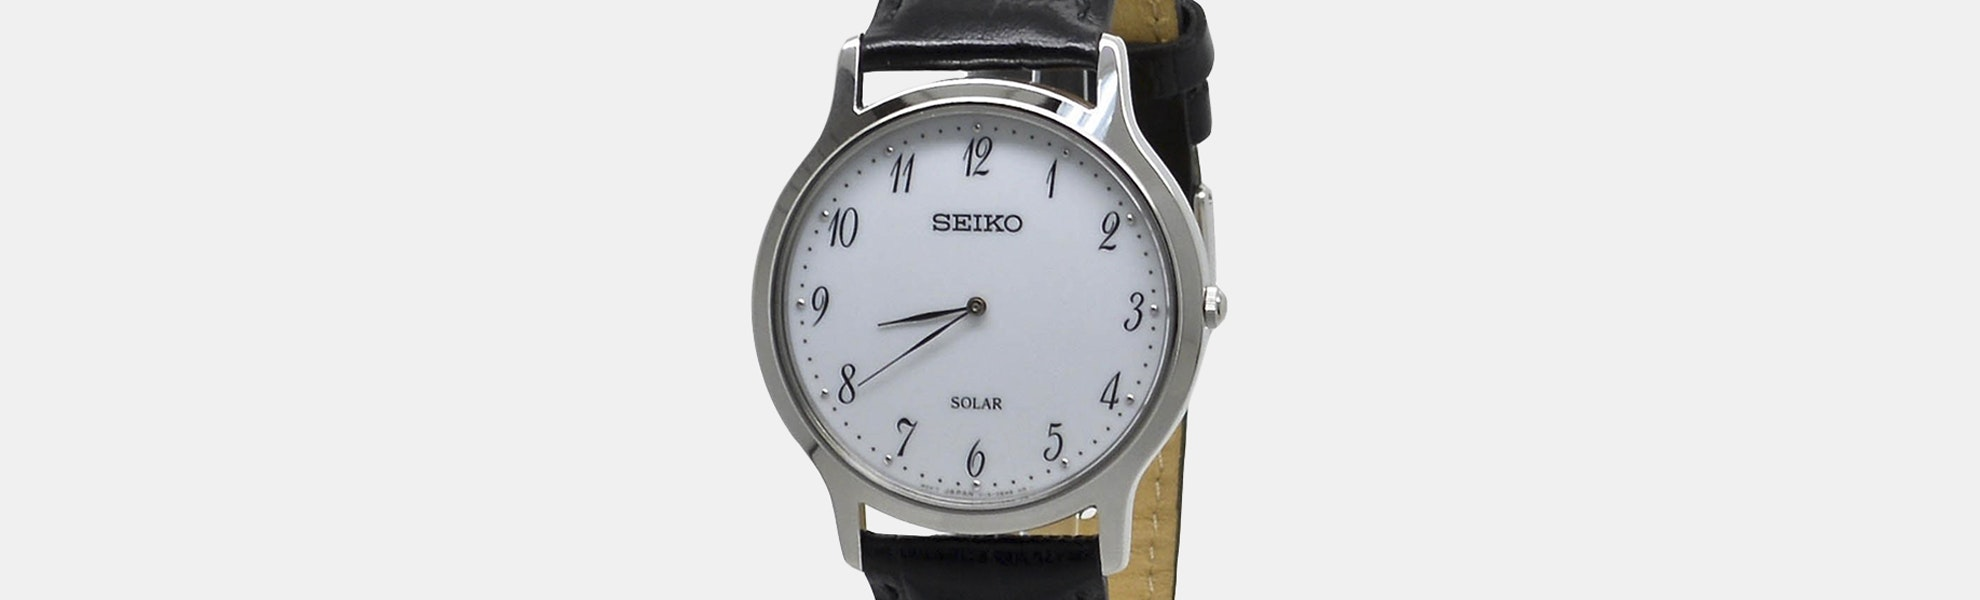 Seiko SUP Solar Watch